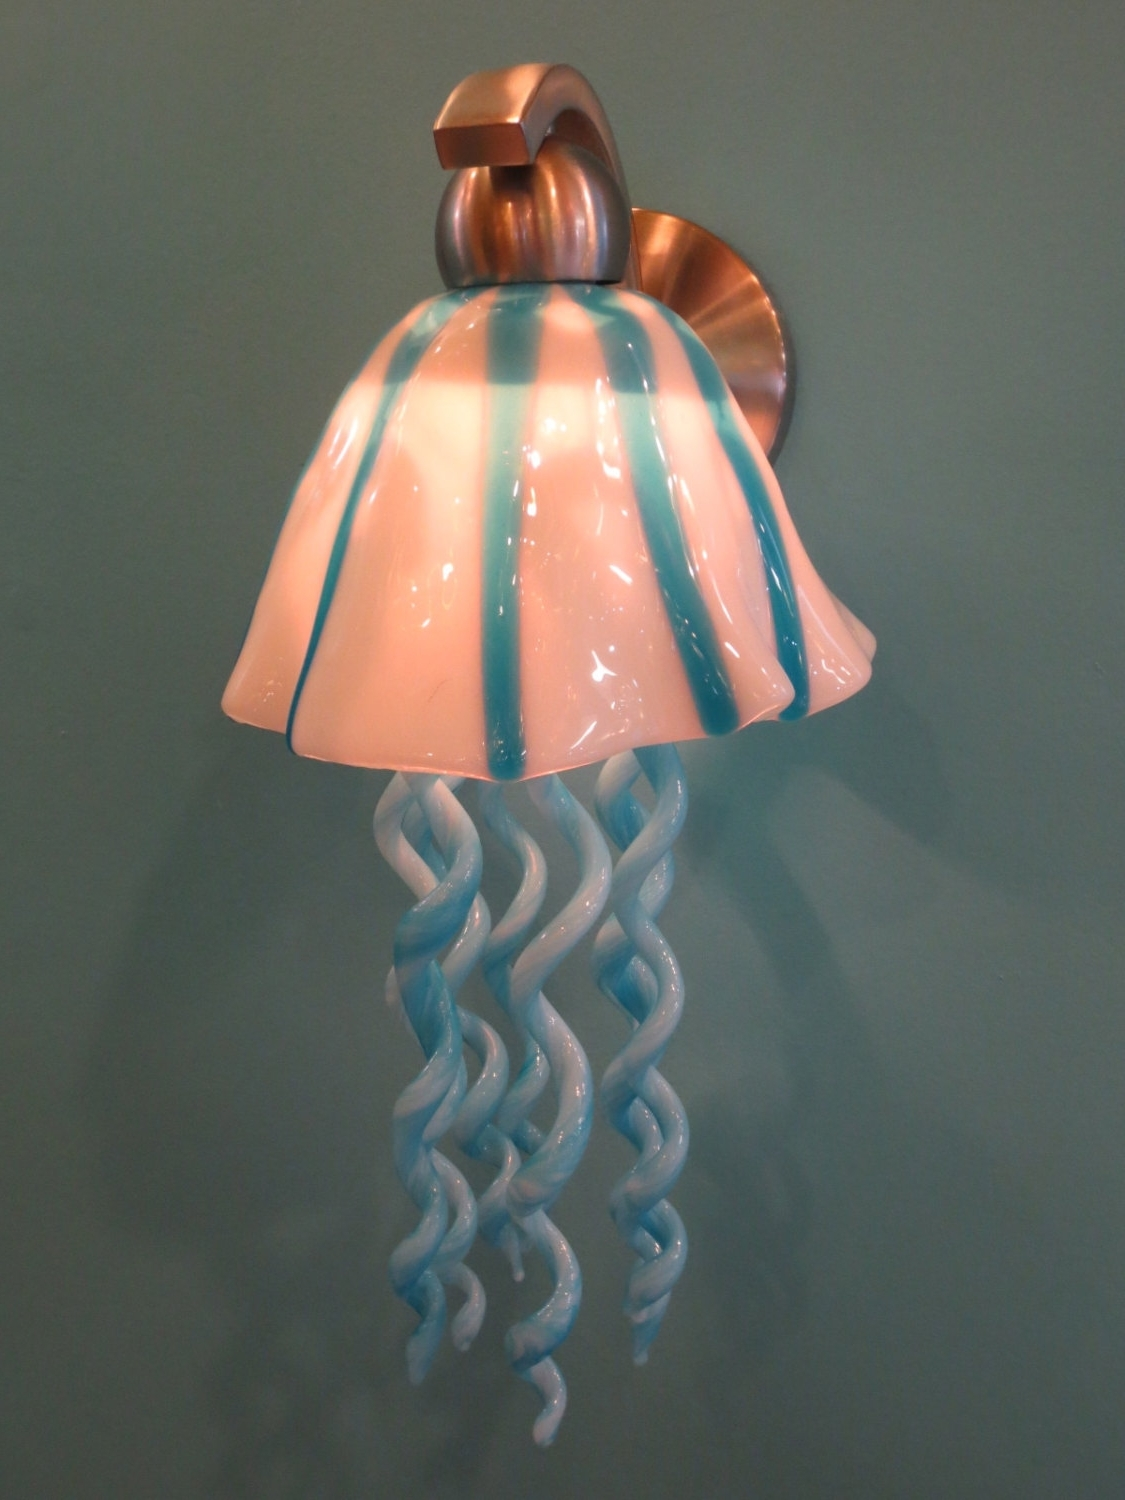 Turquoise Blown Glass Chandeliers Pertaining To Most Current Blown Glass Lighting – Glass Lighting – Jellyfish Sconce – Turquoise (View 12 of 15)